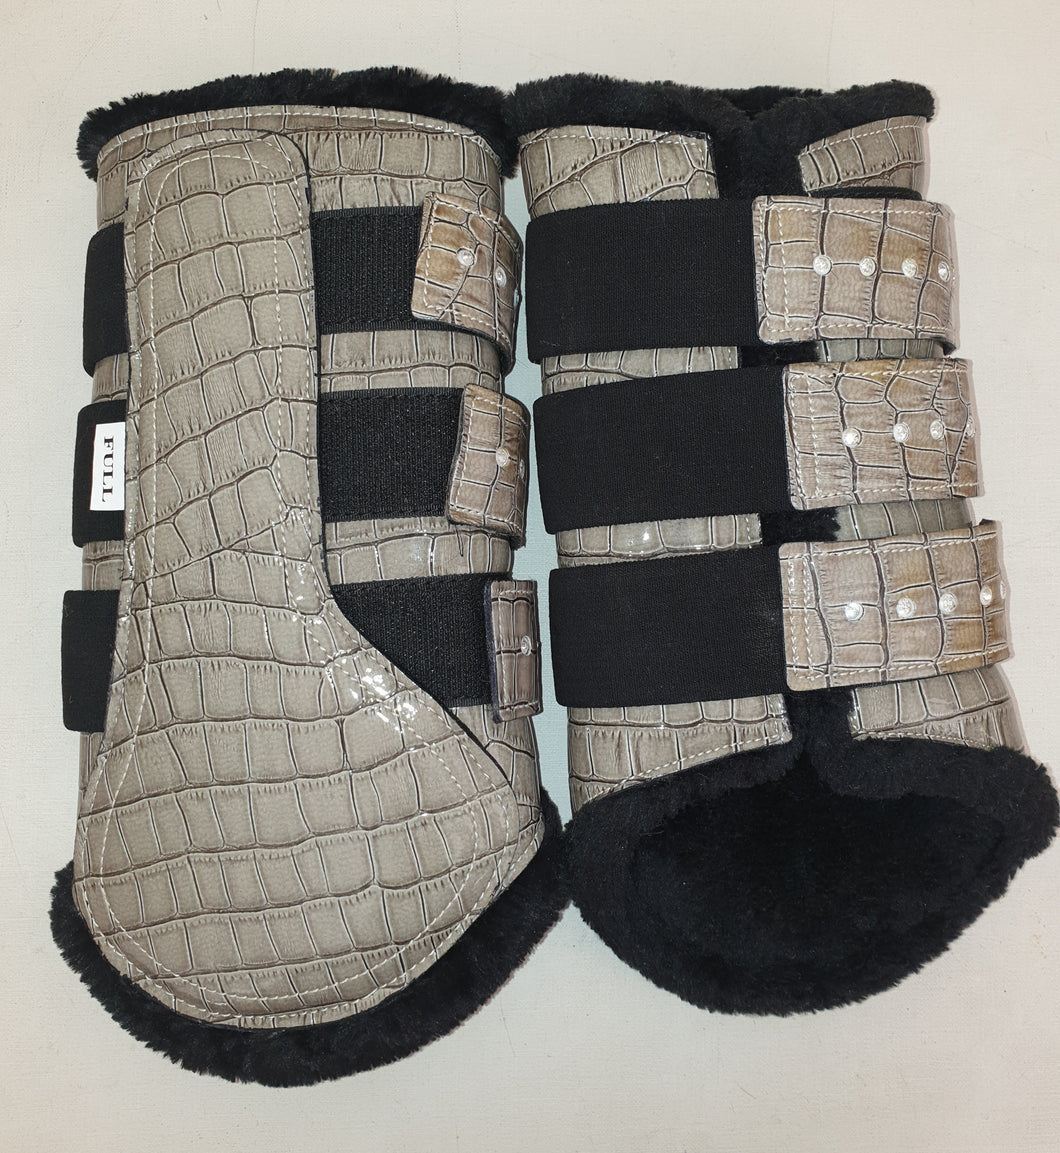 CLEARANCE SALE! Brushing Boots GREY CROC Crystal Tabs